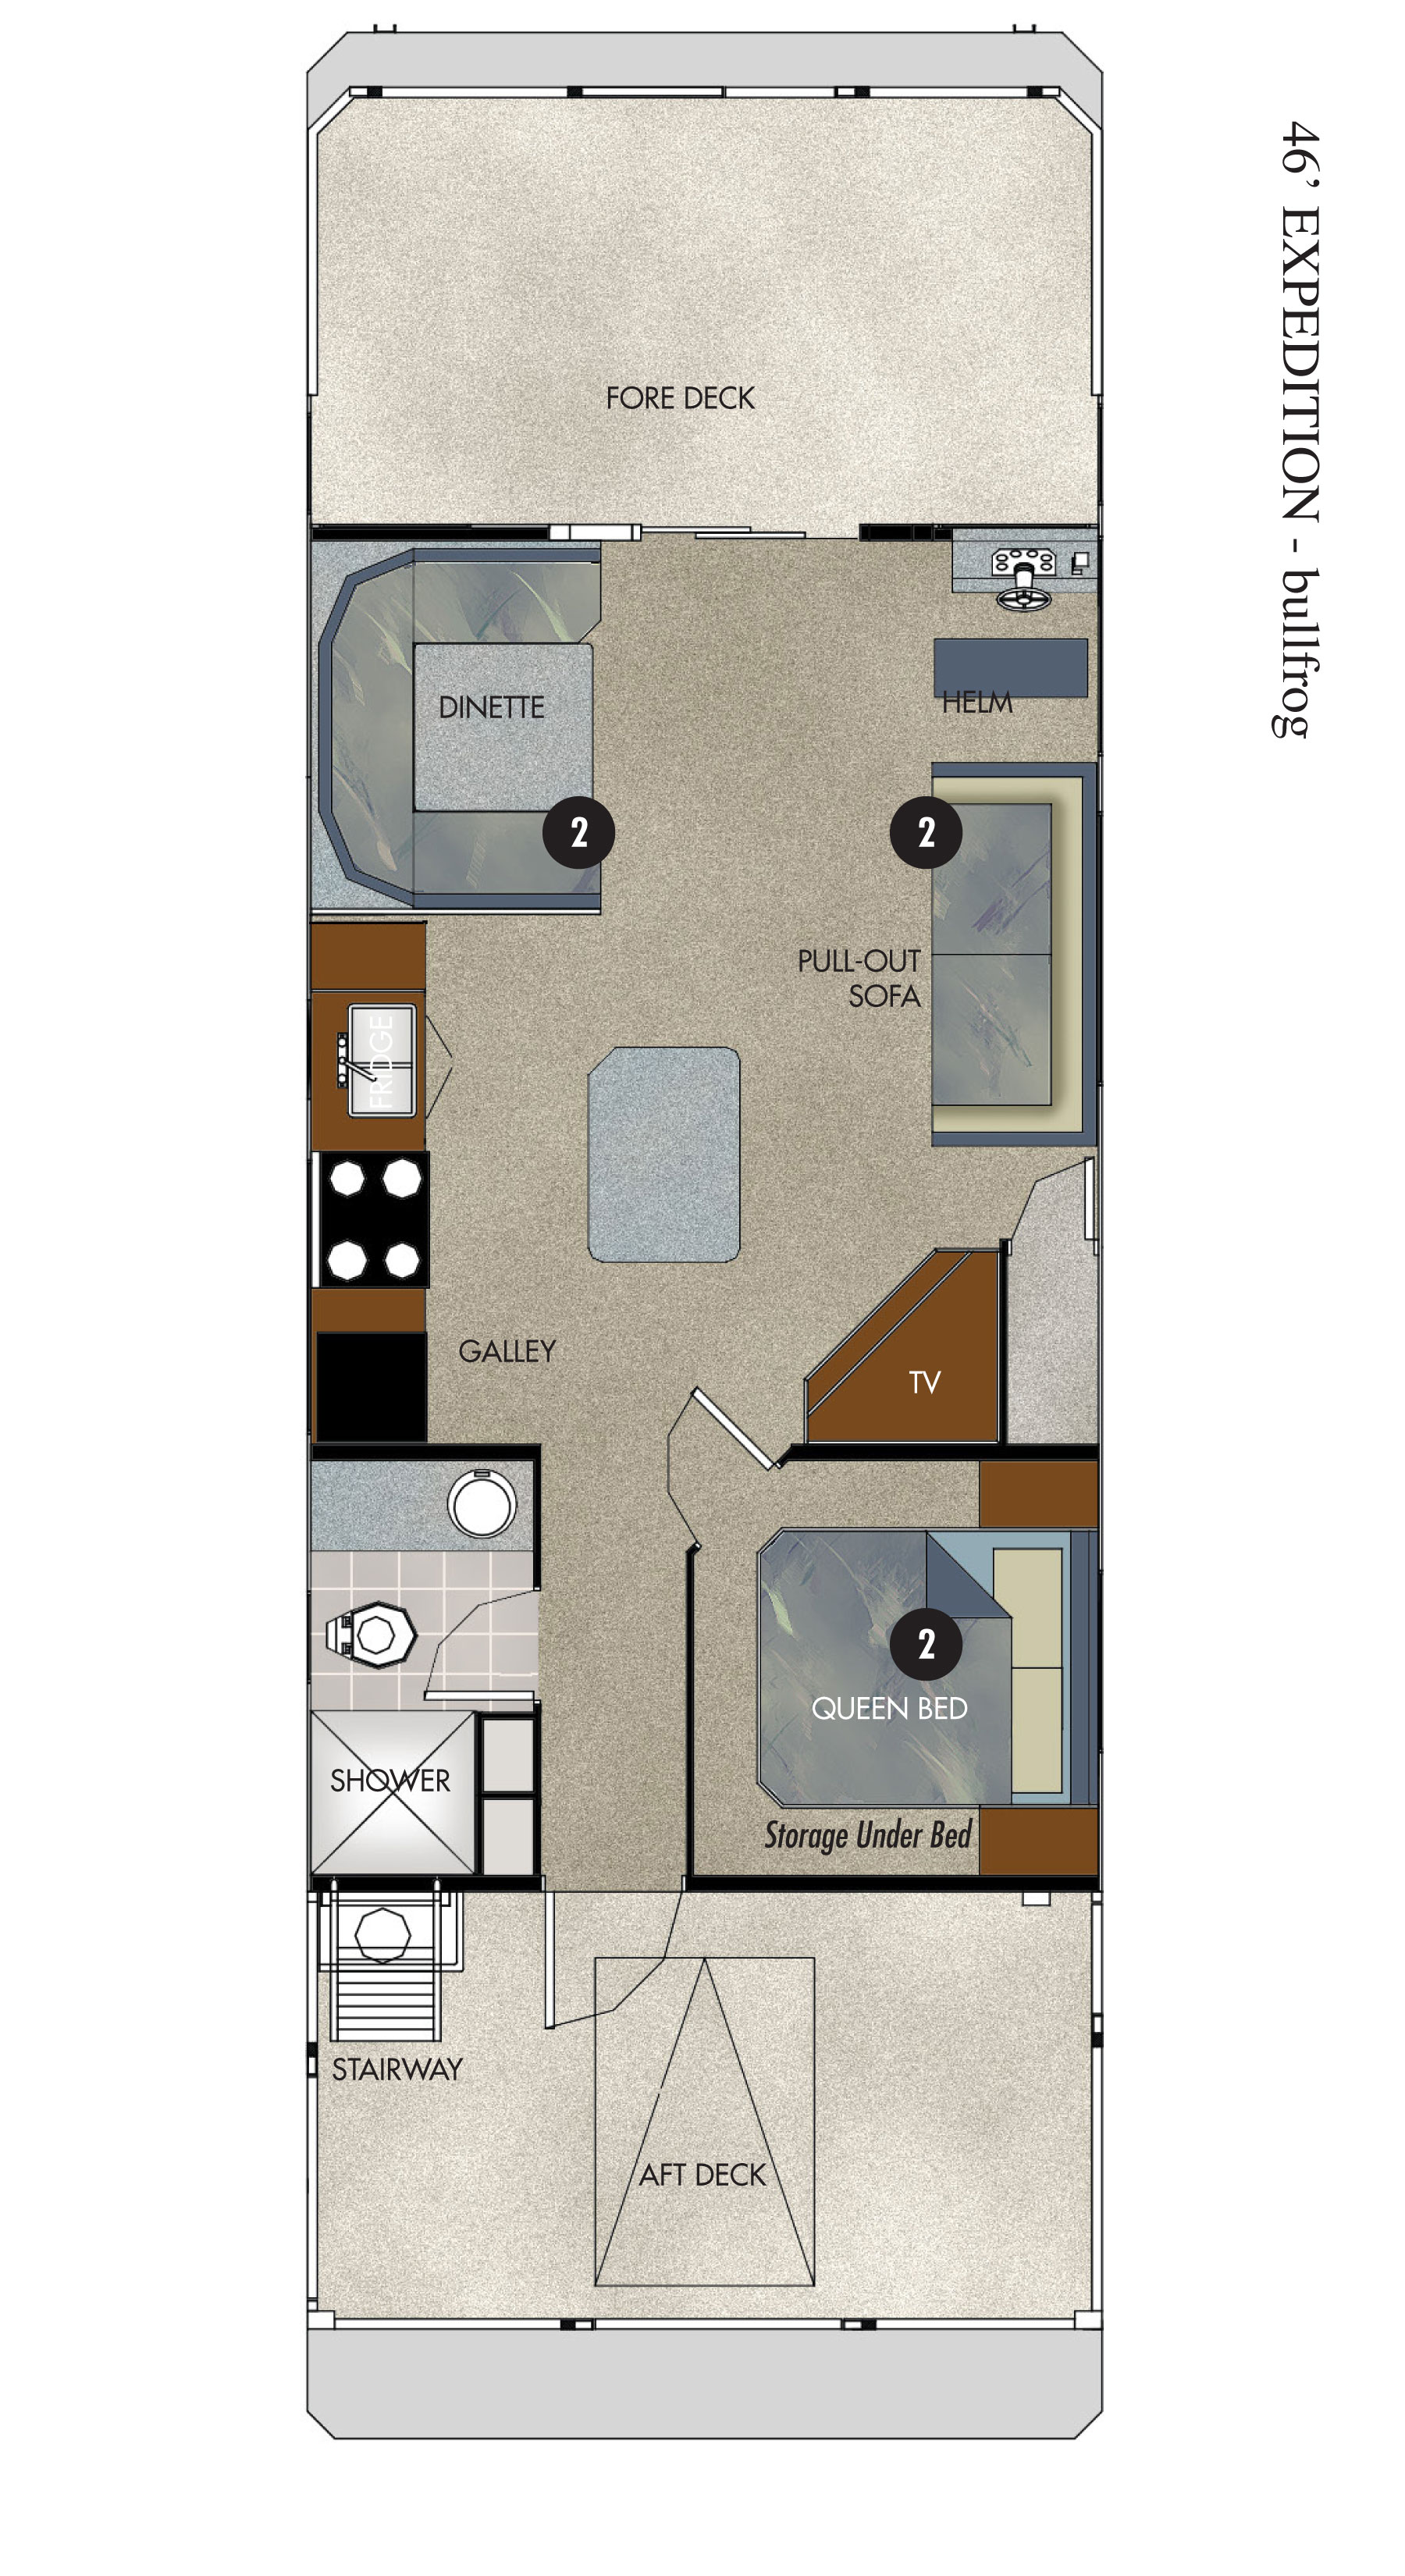 Bullfrog Marina 46-ft Expedition Houseboat Floor Plan